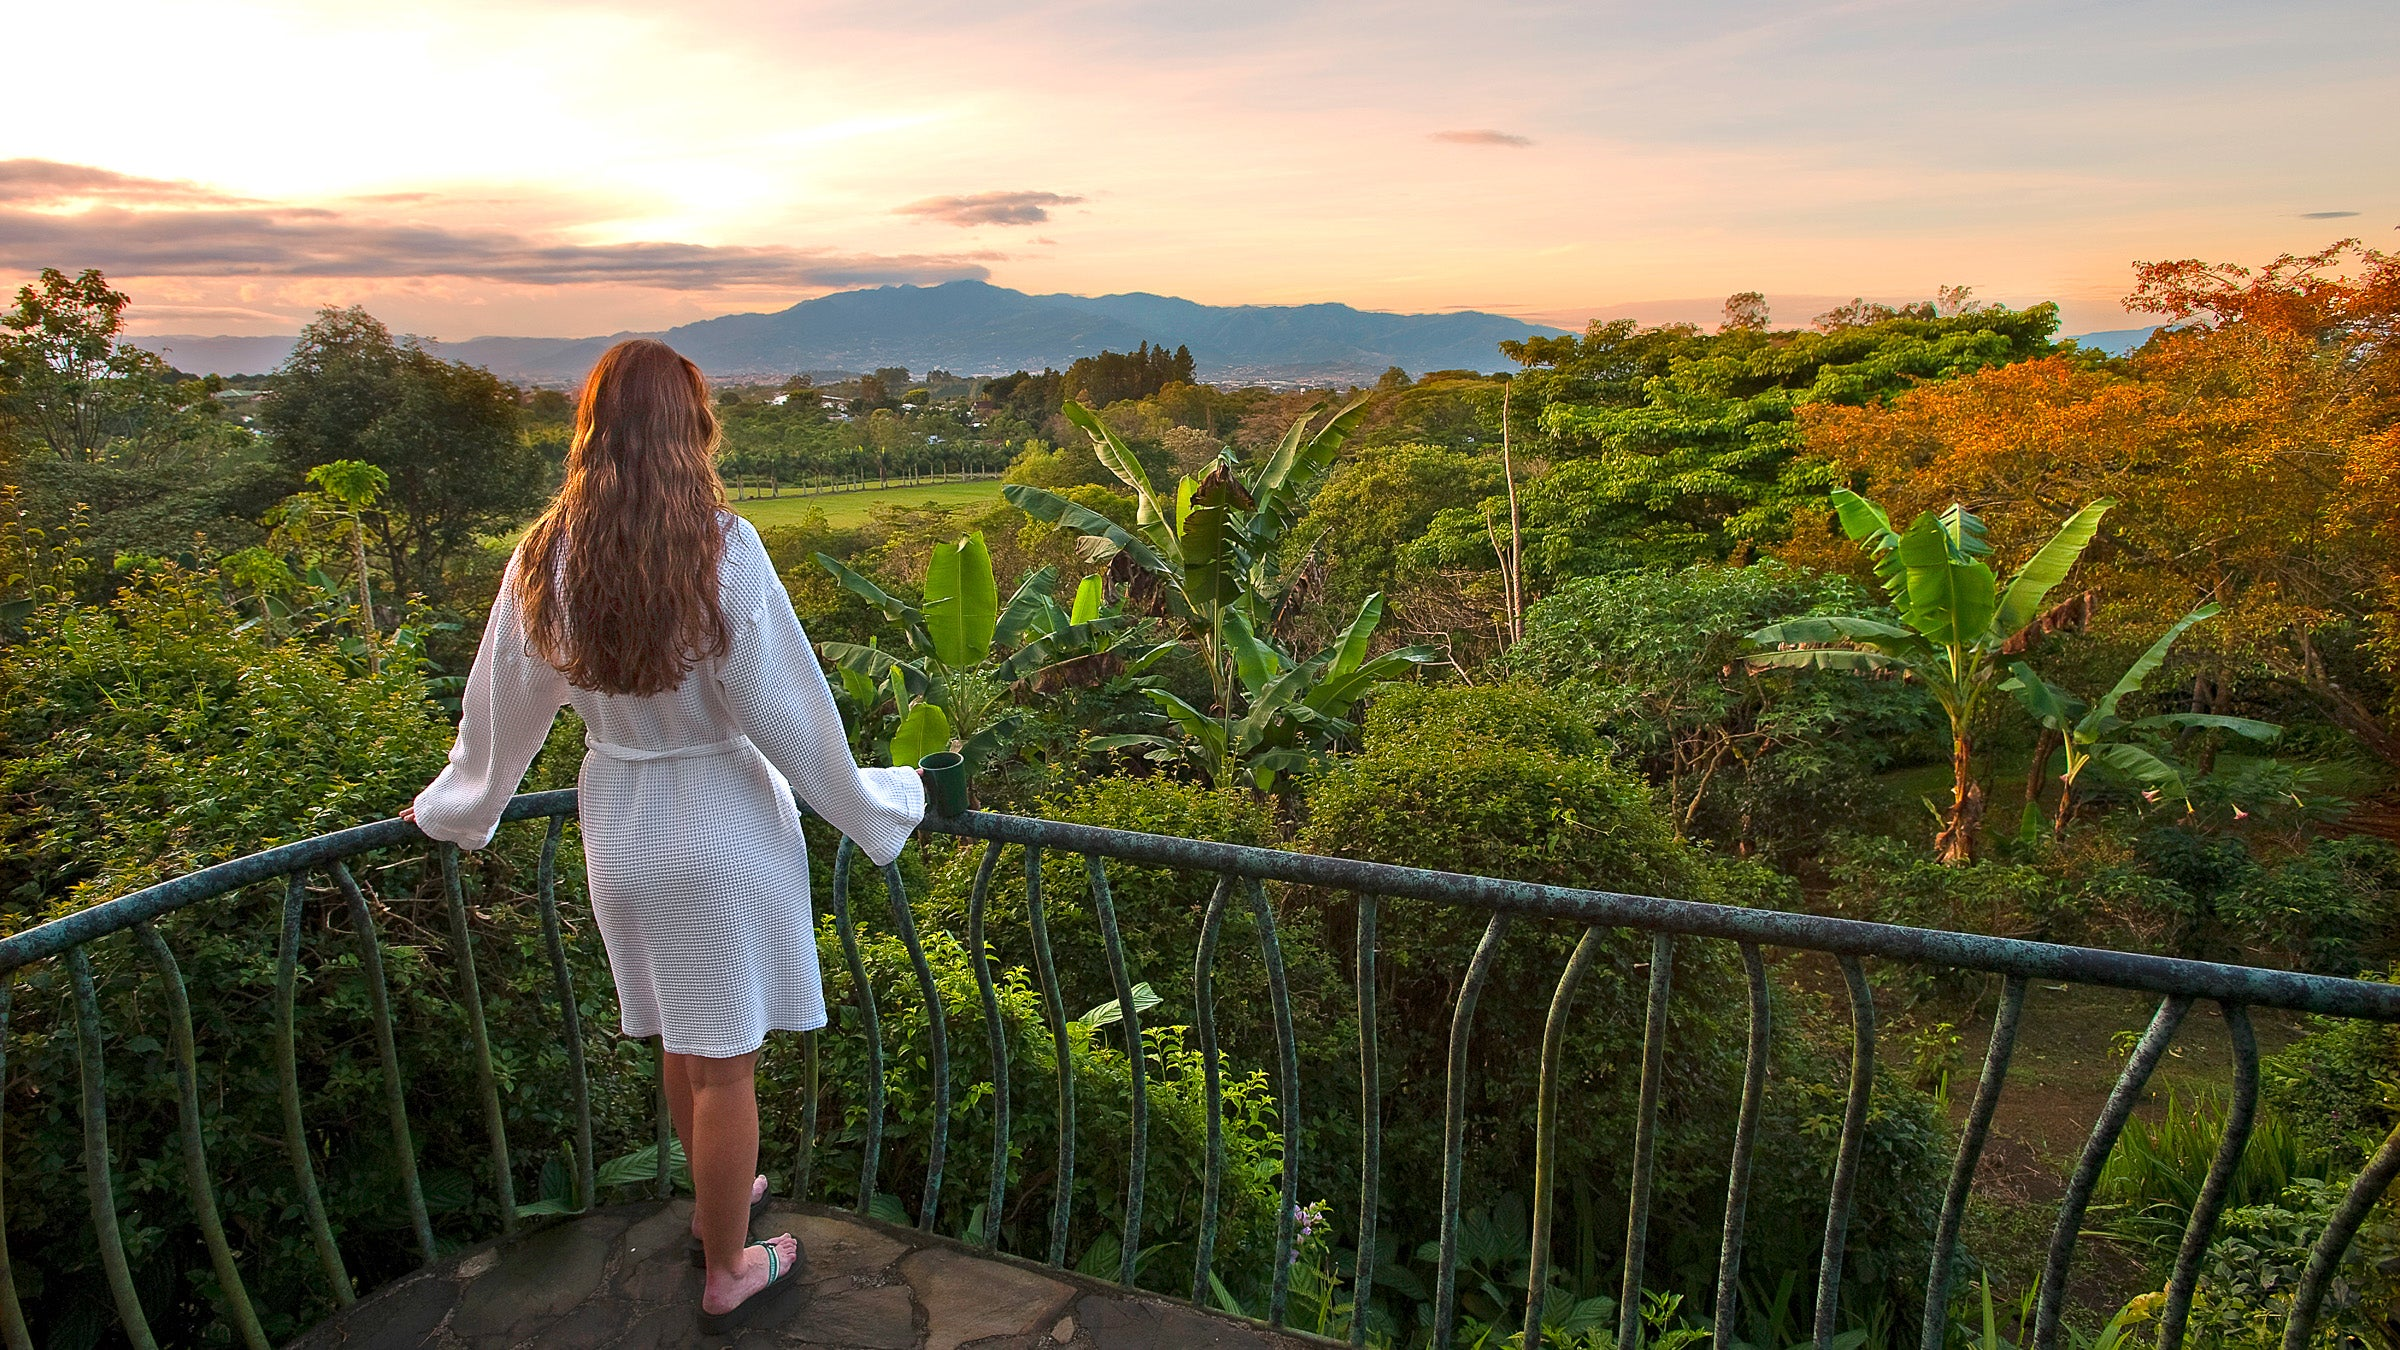 Woman stands on balcony overlooking Costa Rica at sunset